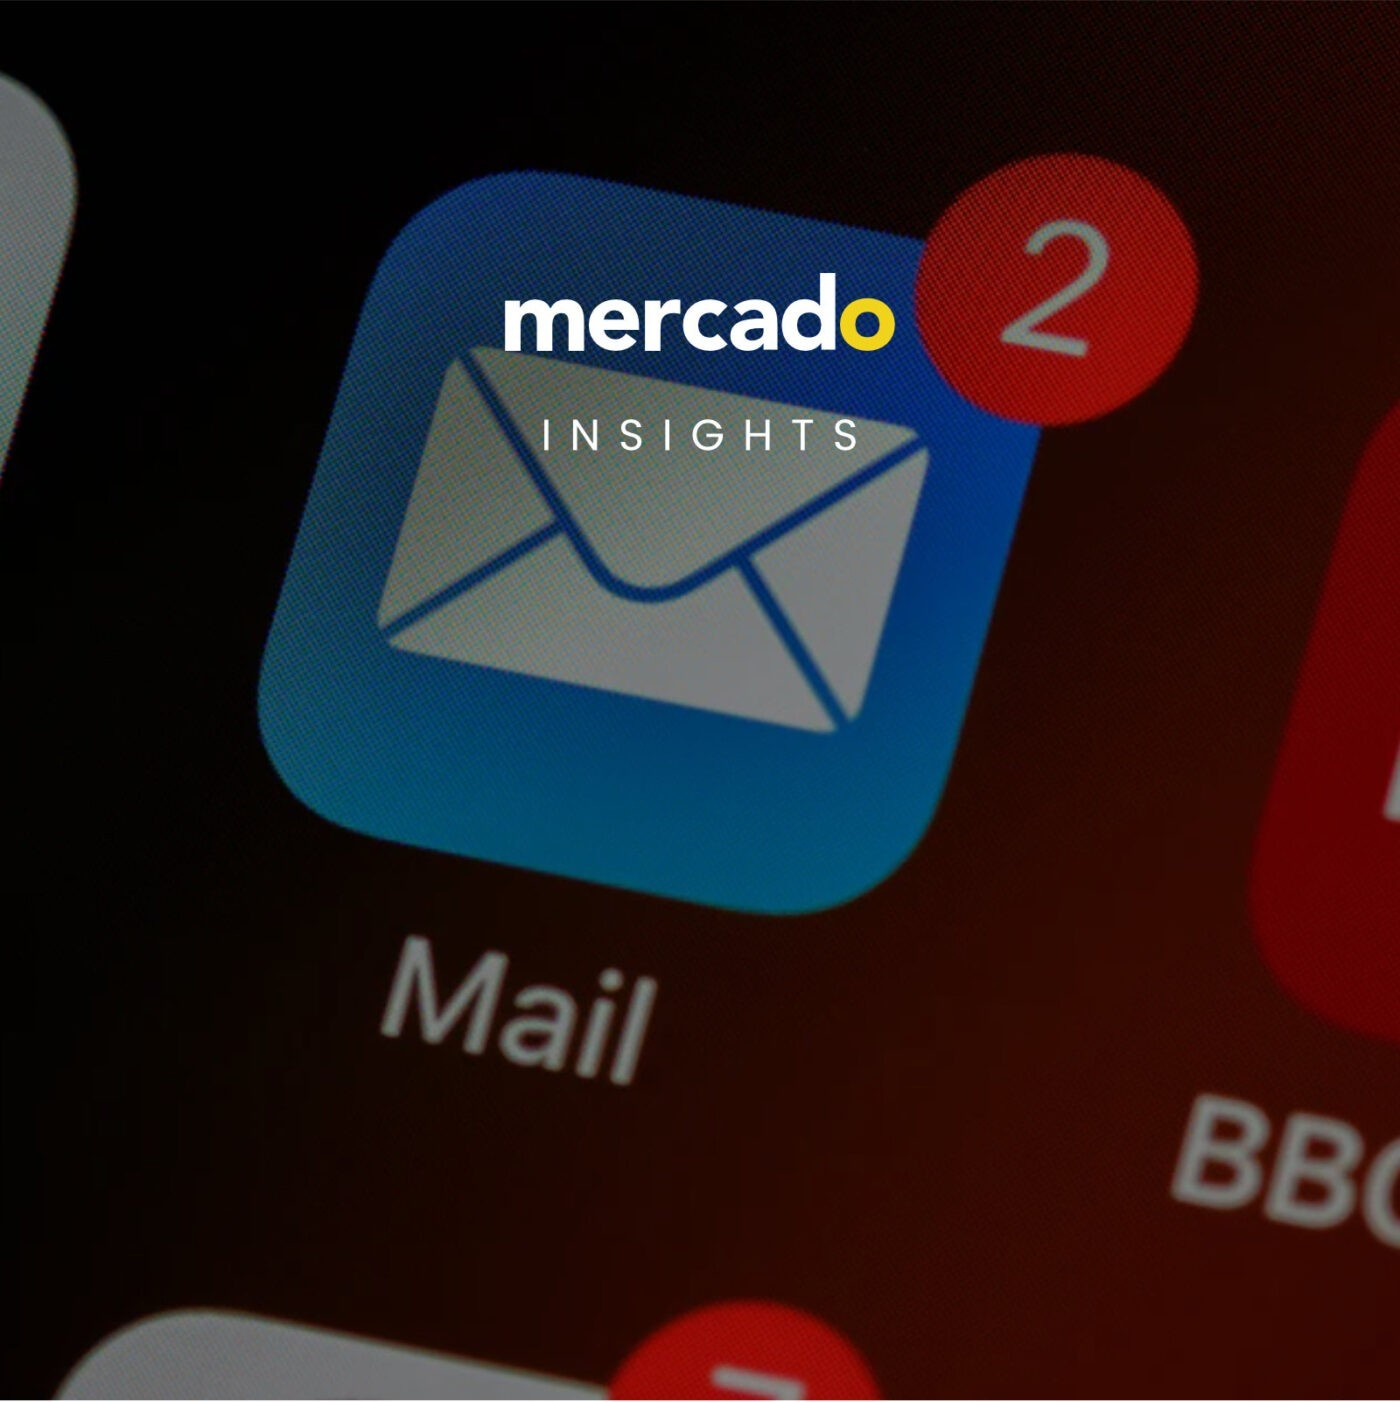 Mercado | Insights - Please stop sending emails so I can respond to your emails